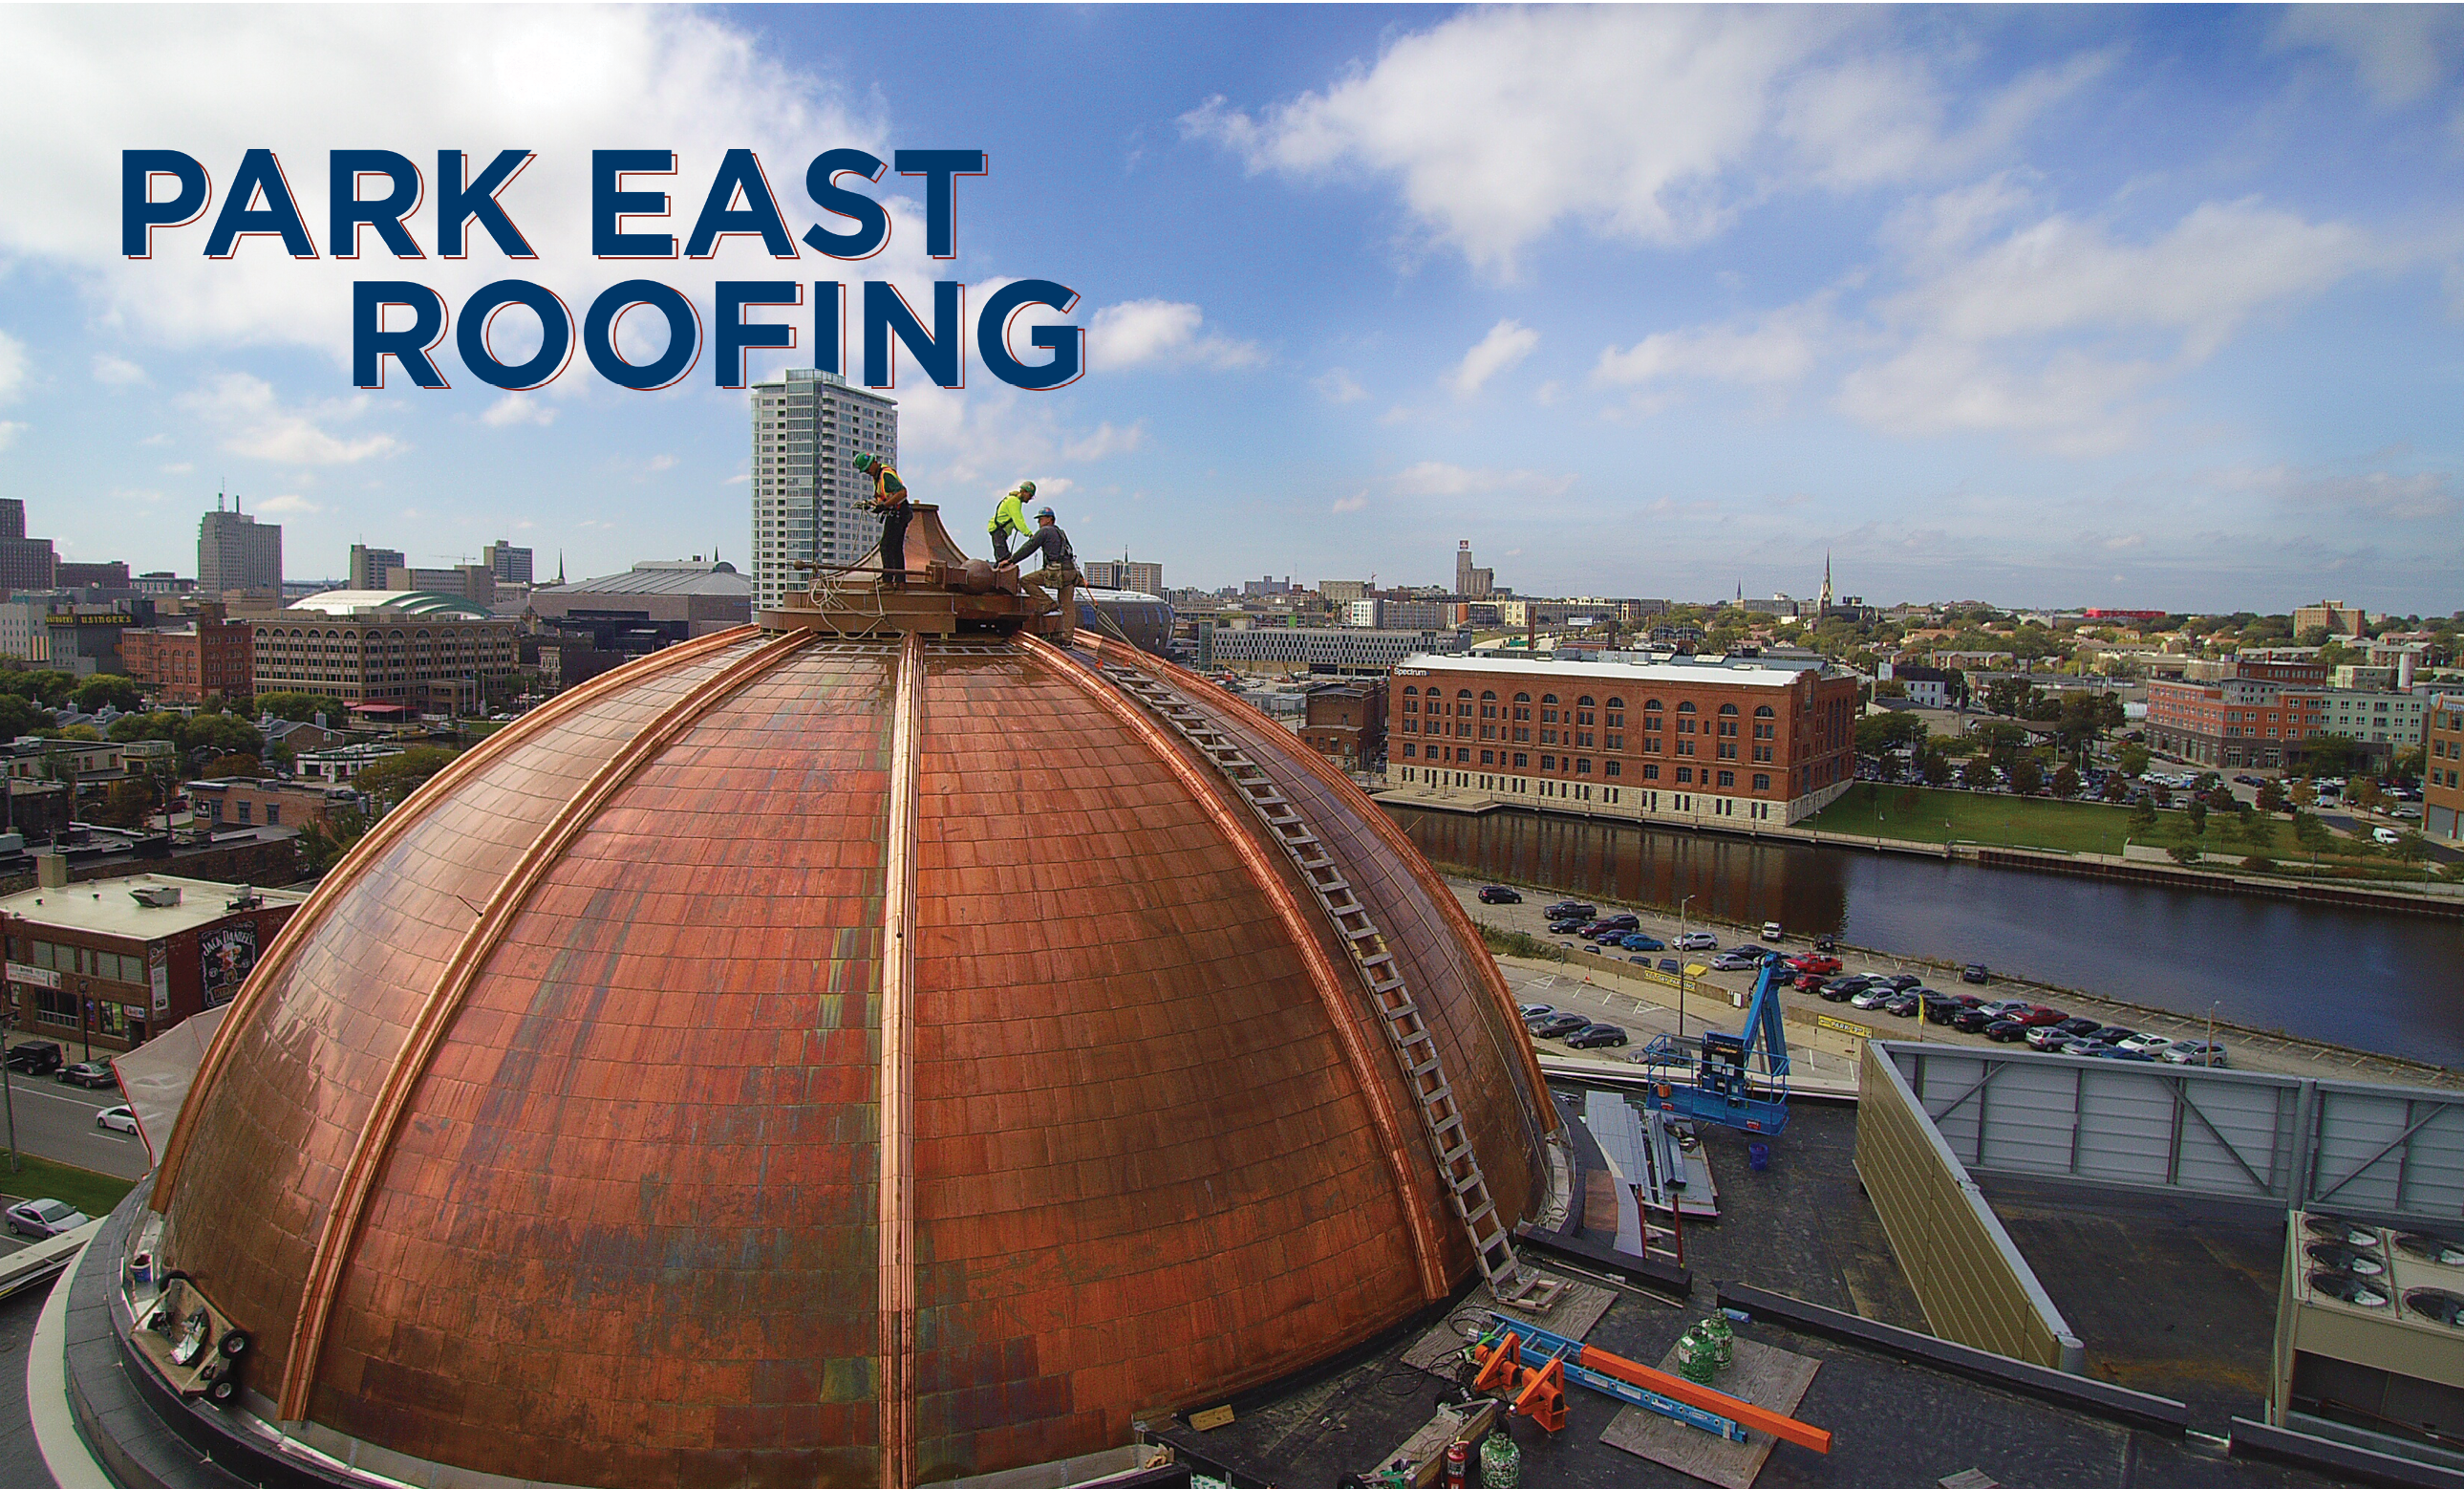 Park East roofing - F.J.A. Christiansen Roofing helps build a new landmark in Milwaukee